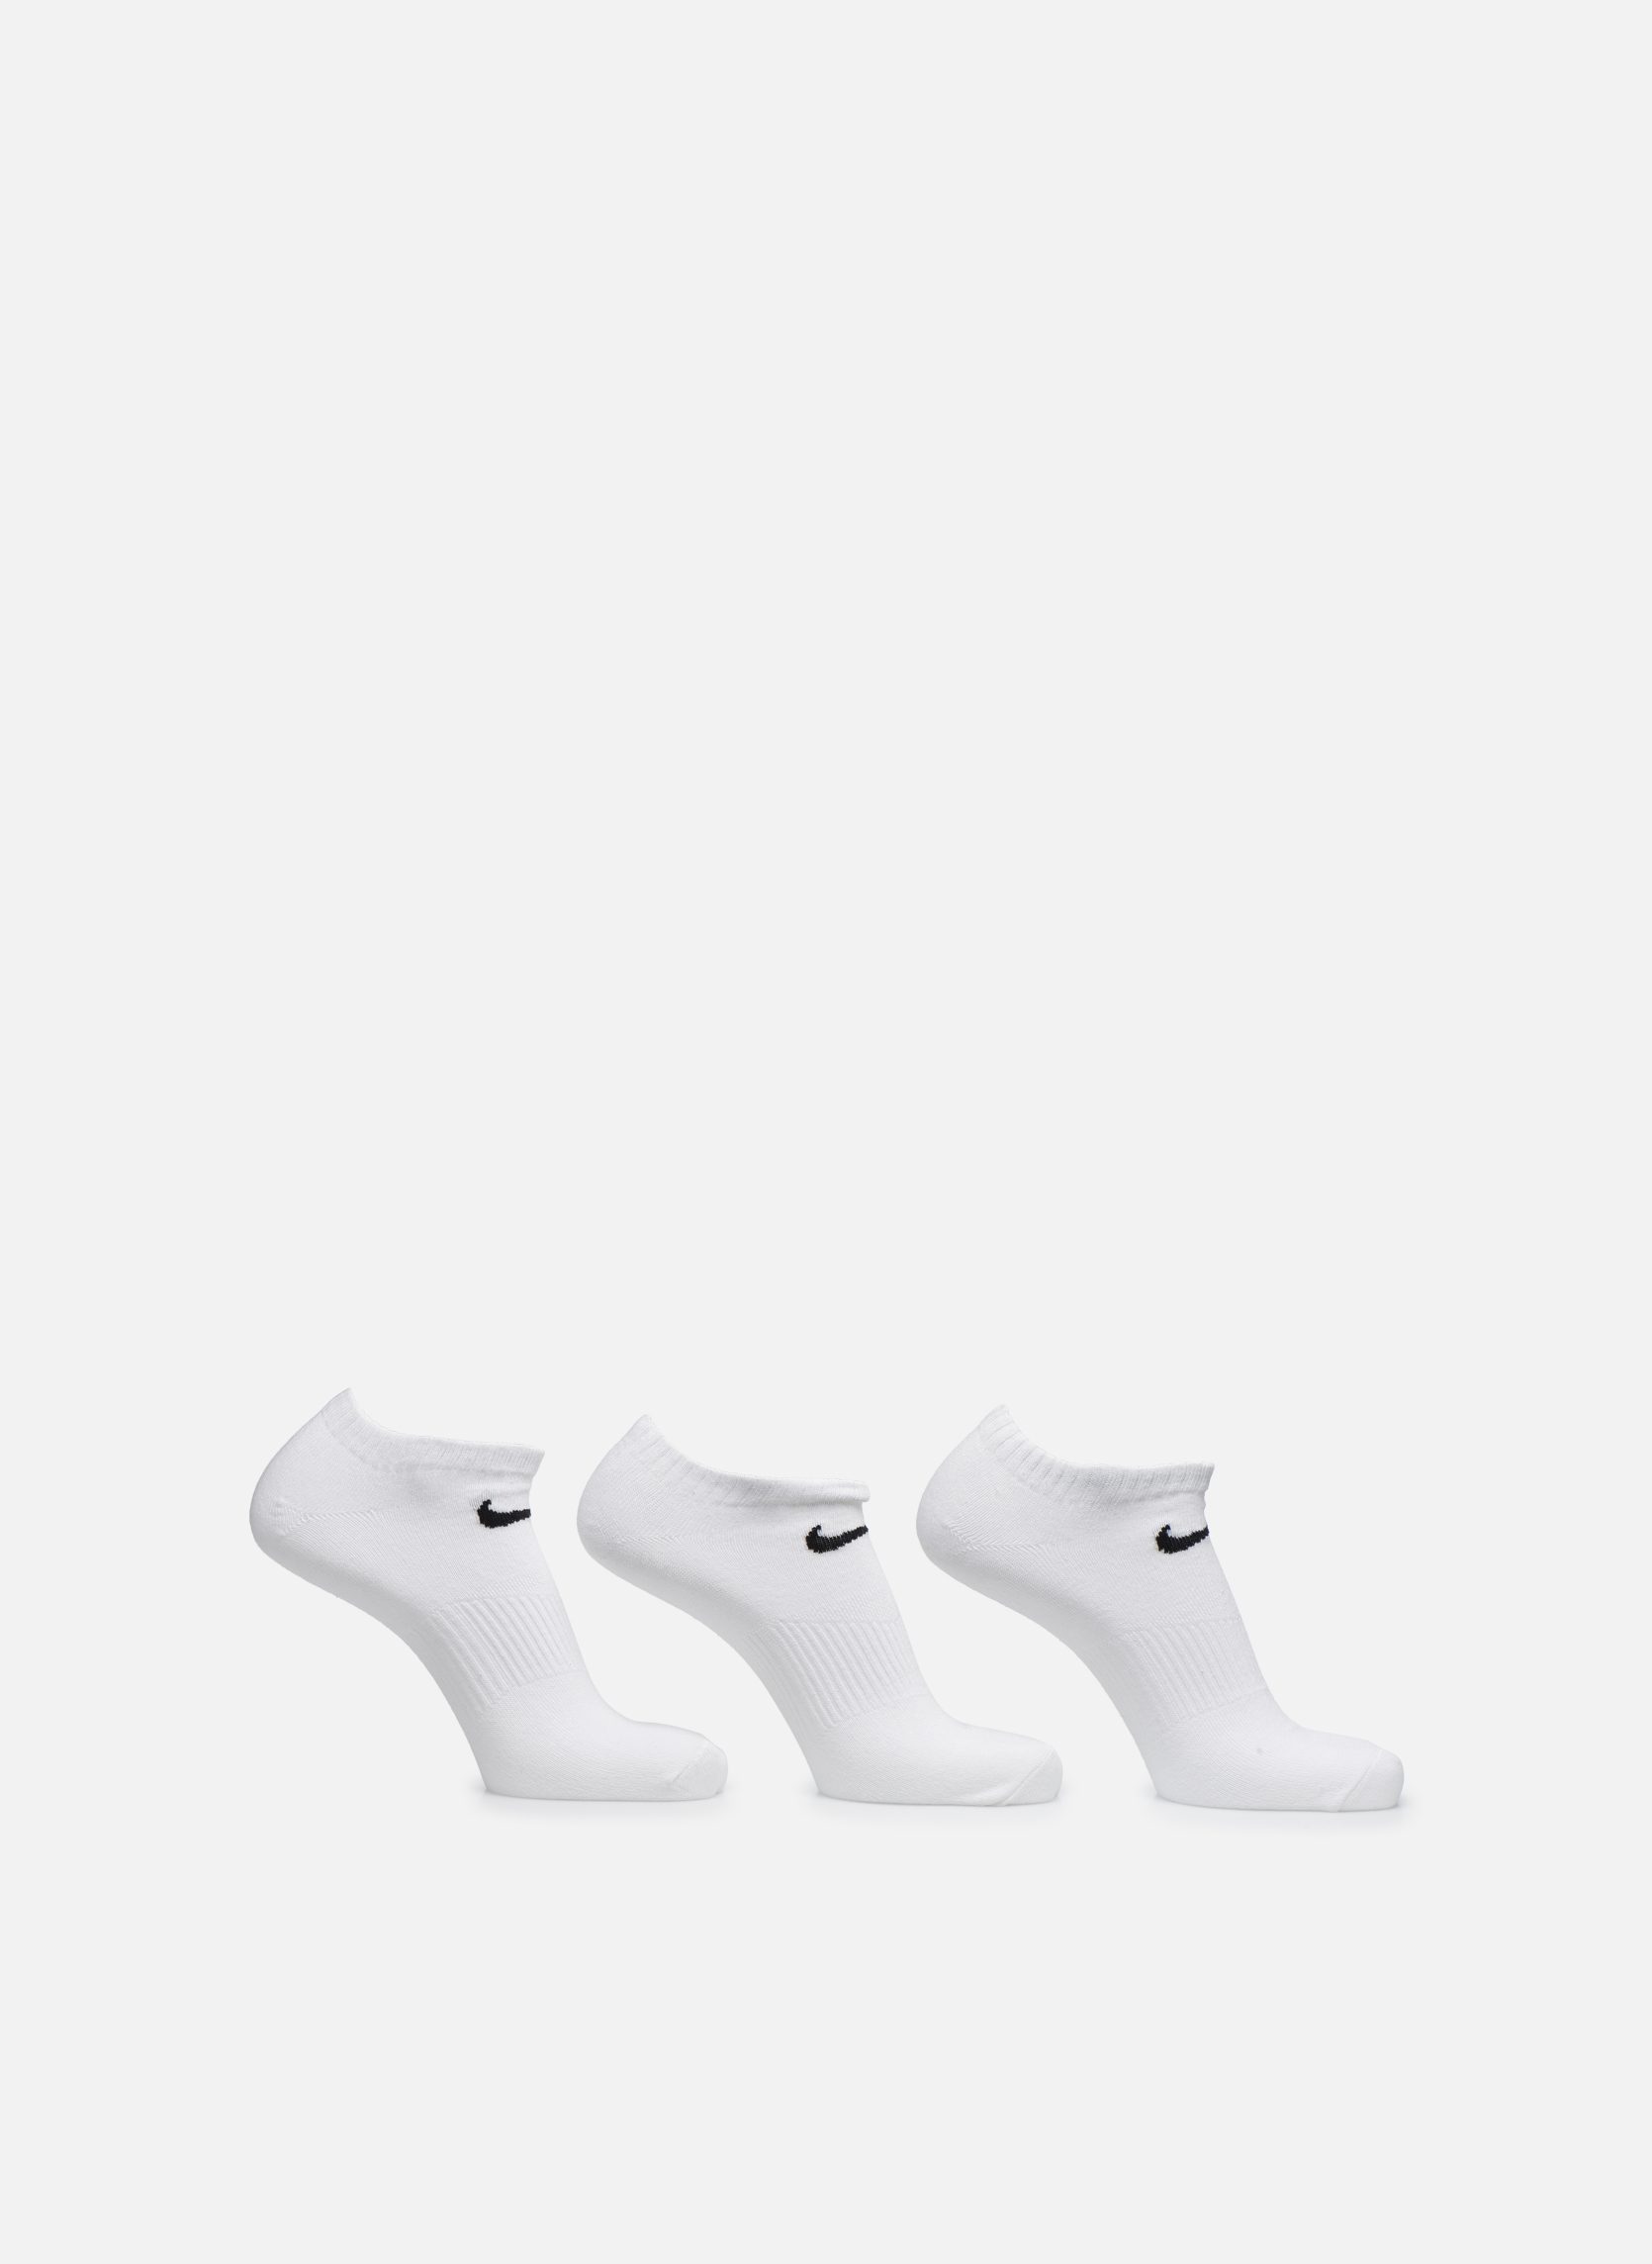 (3 pack) Nike Invisible socks